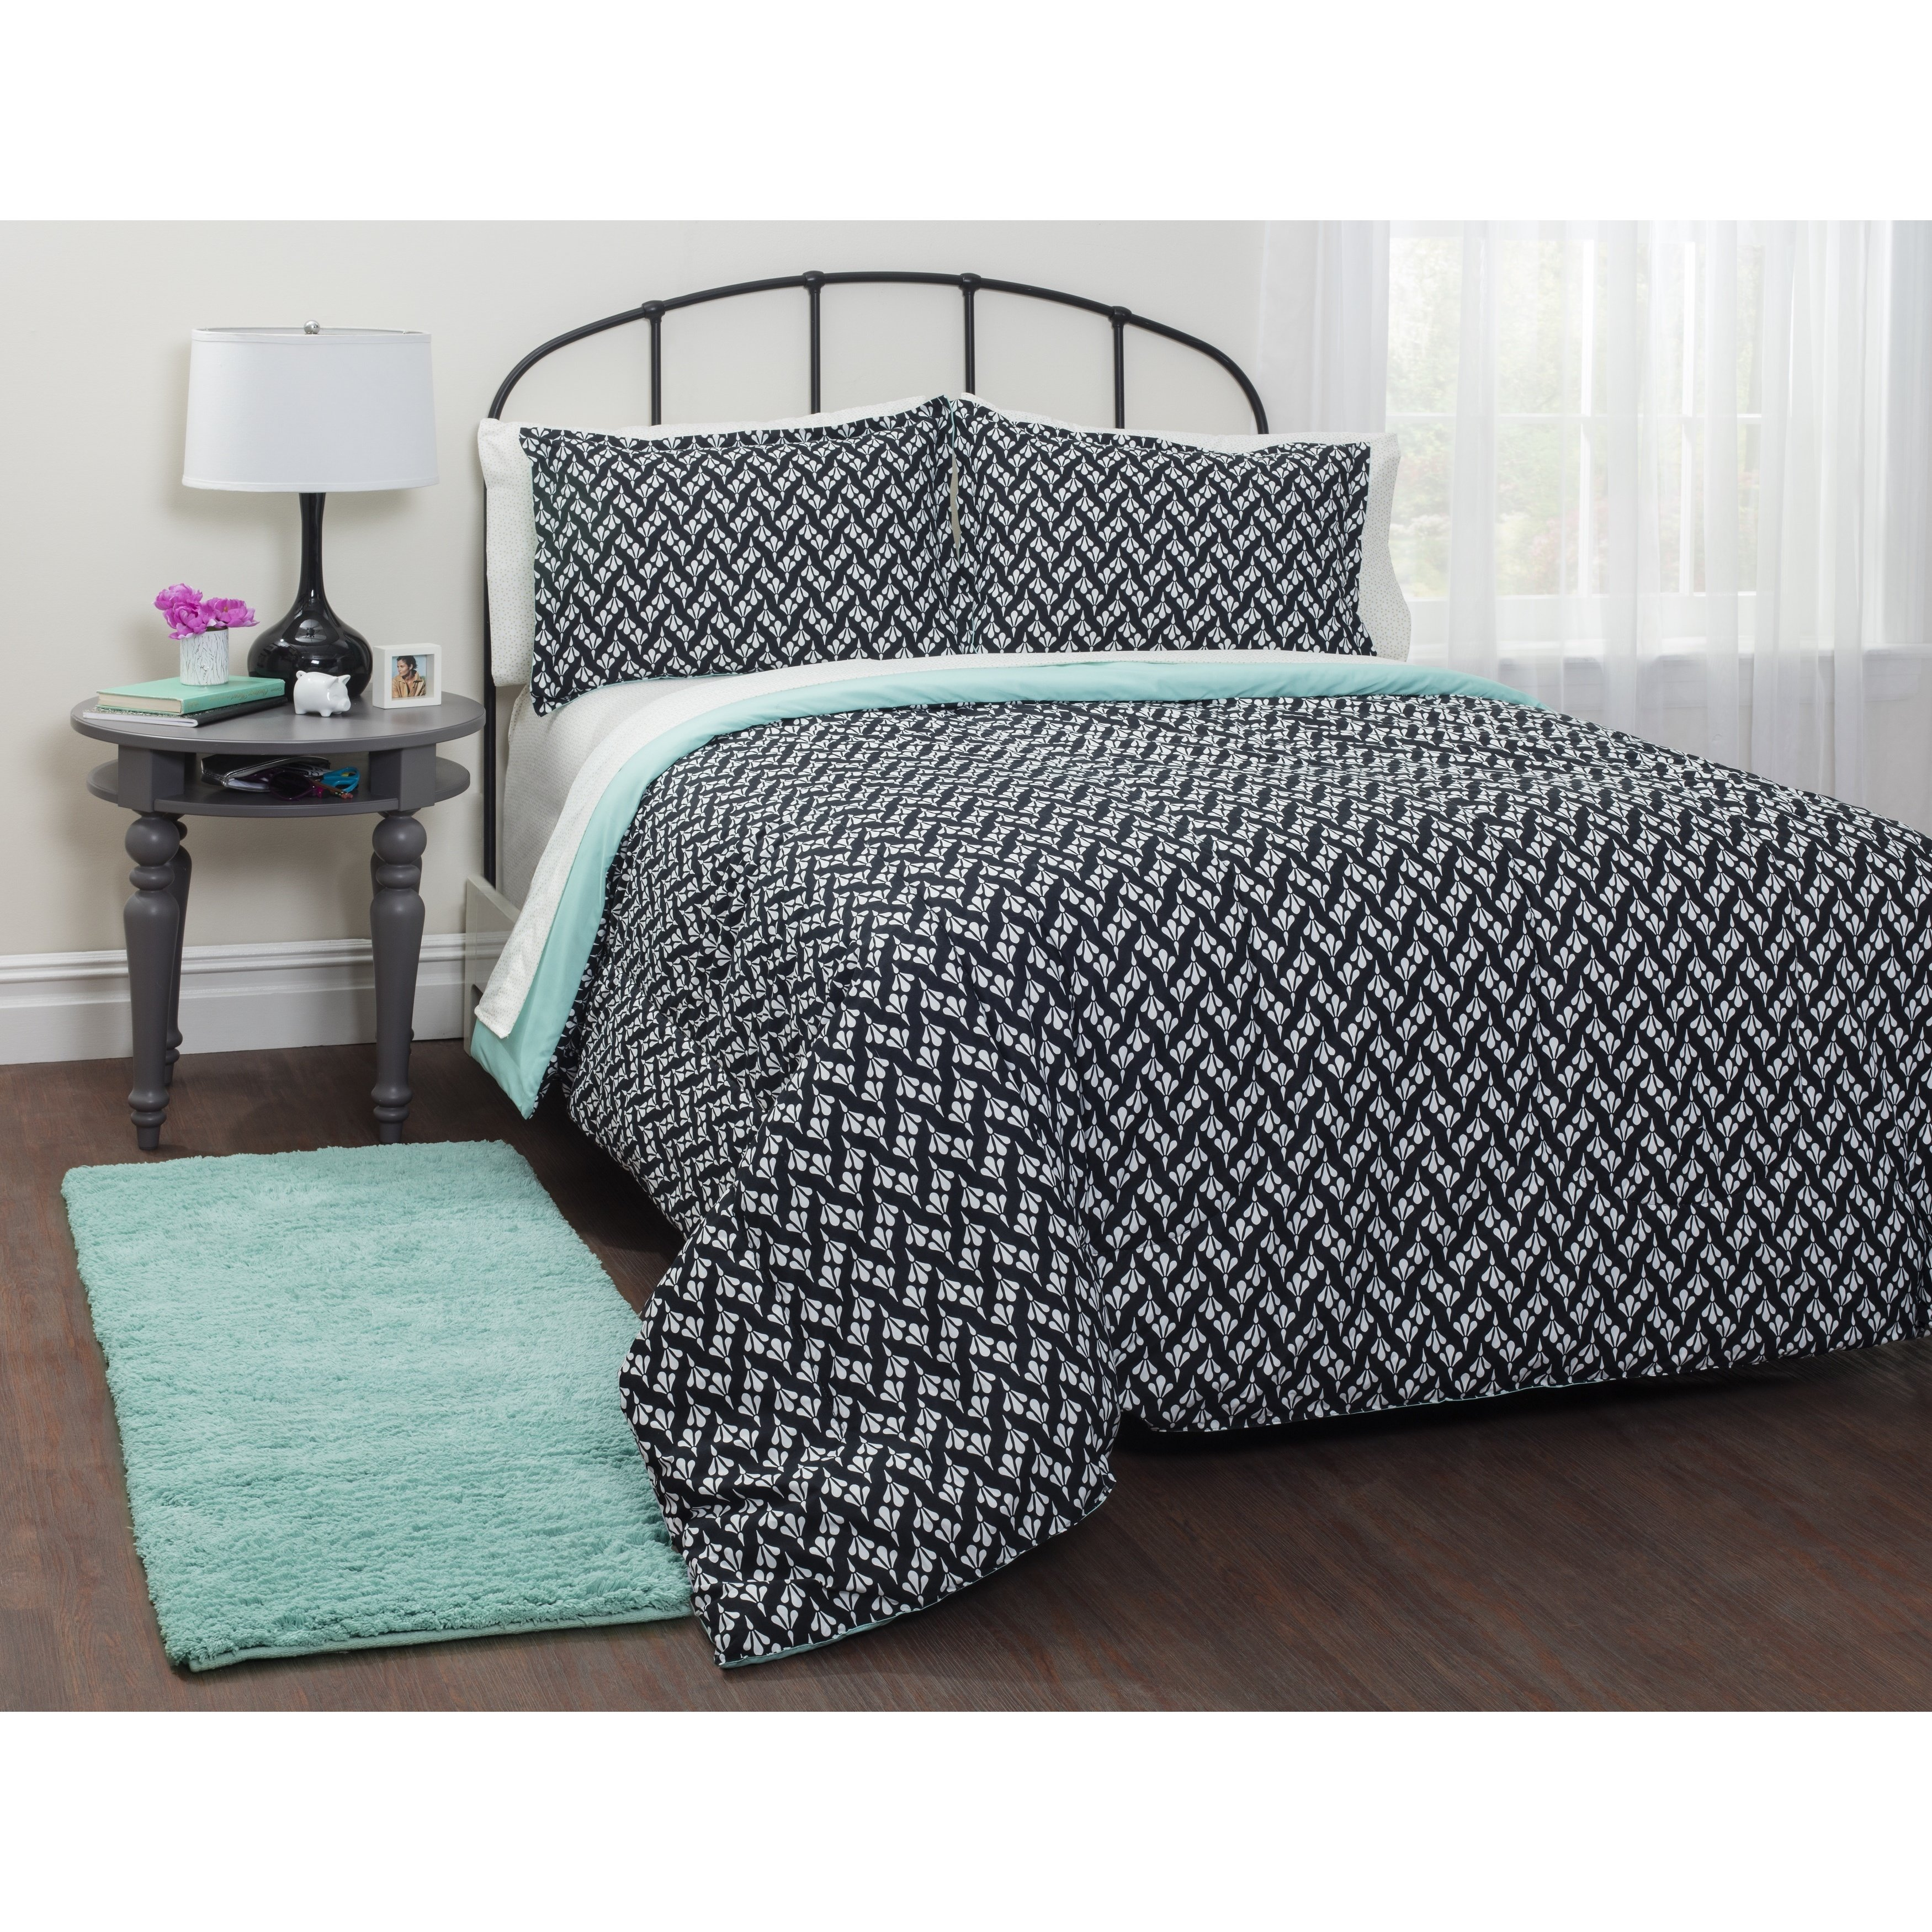 Delicieux Heritage Club Motif Mint Bed In A Bag Bedding Set